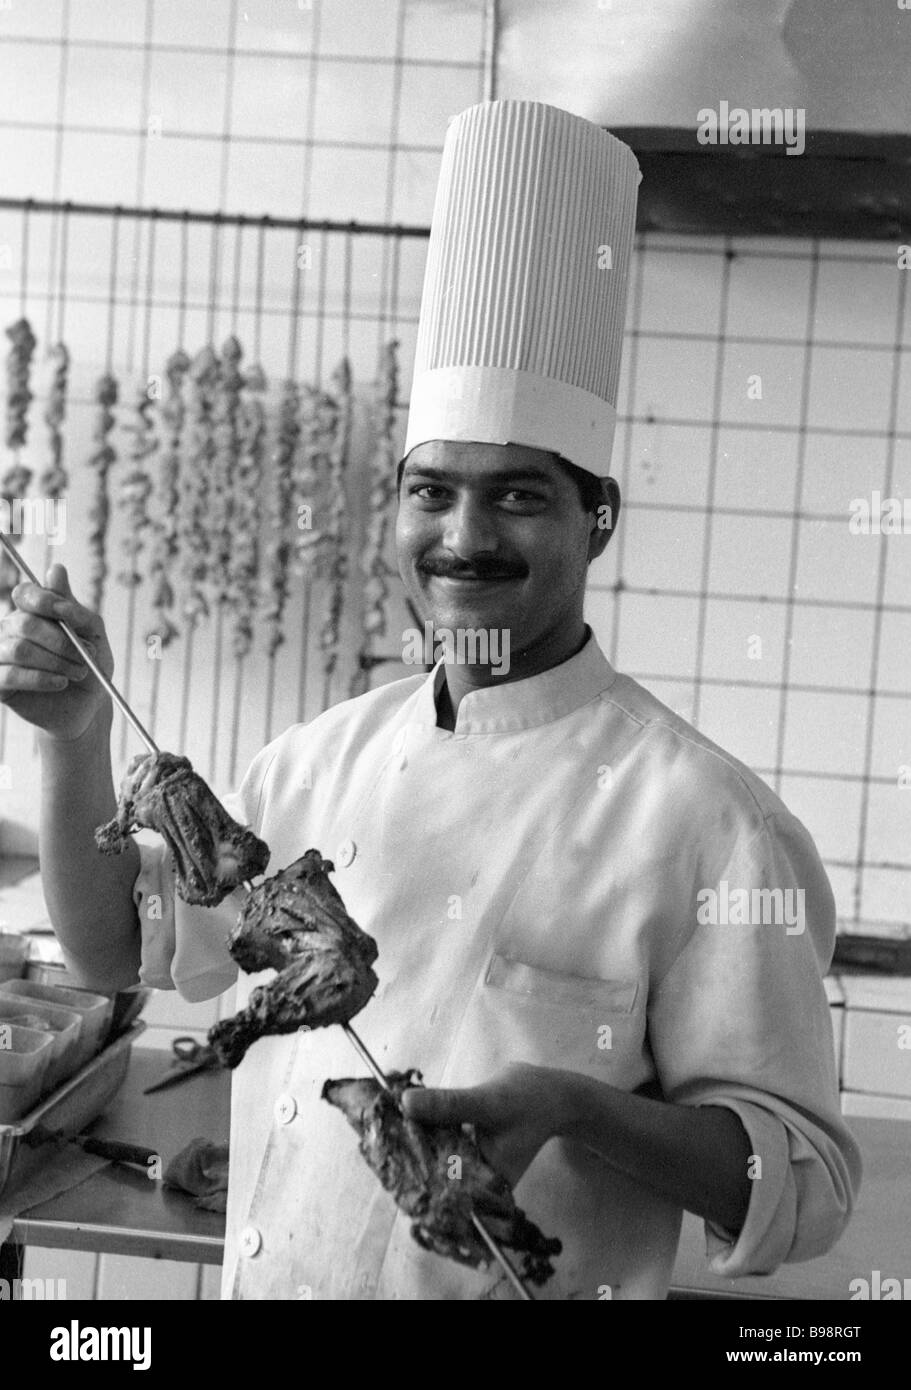 Indian Chef Black And White Stock Photos Images Alamy